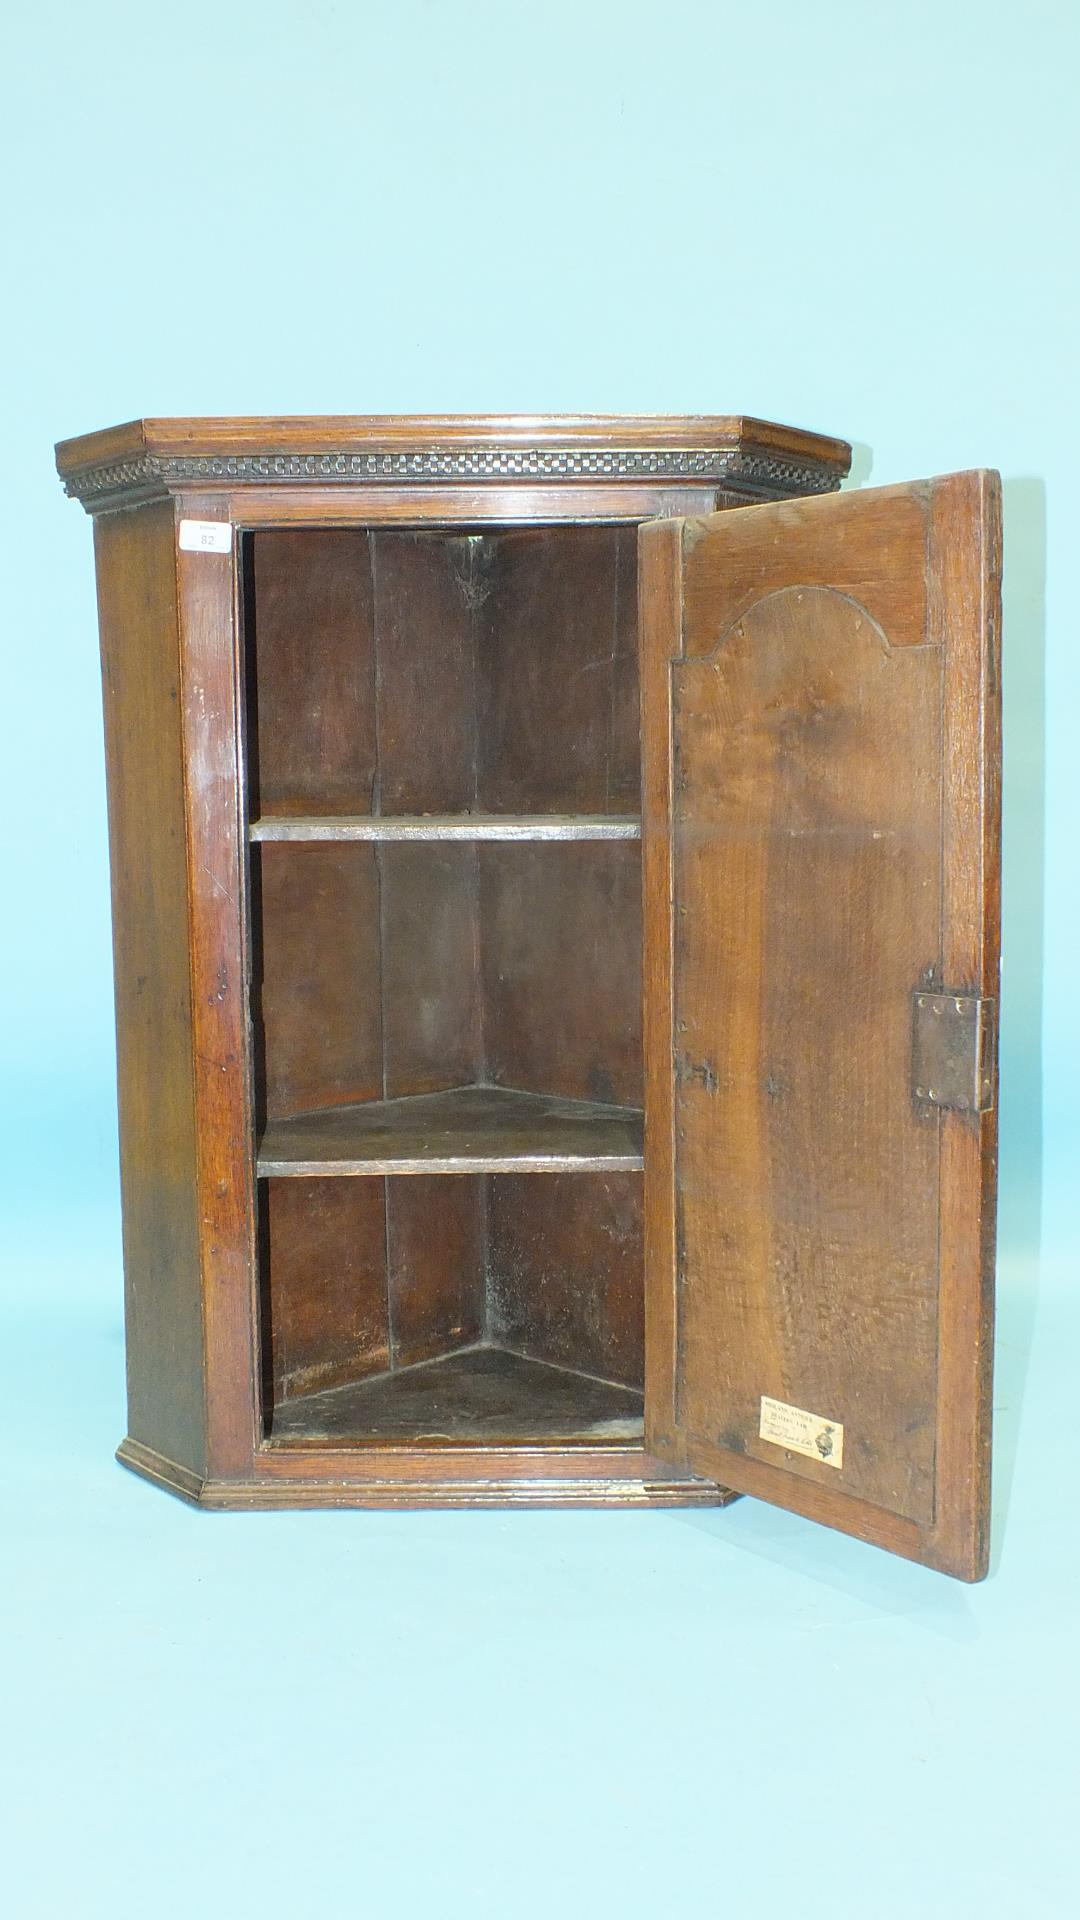 Lot 82 - A small Georgian oak hanging corner cupboard, the panelled door with inlaid star motif, 63cm wide,